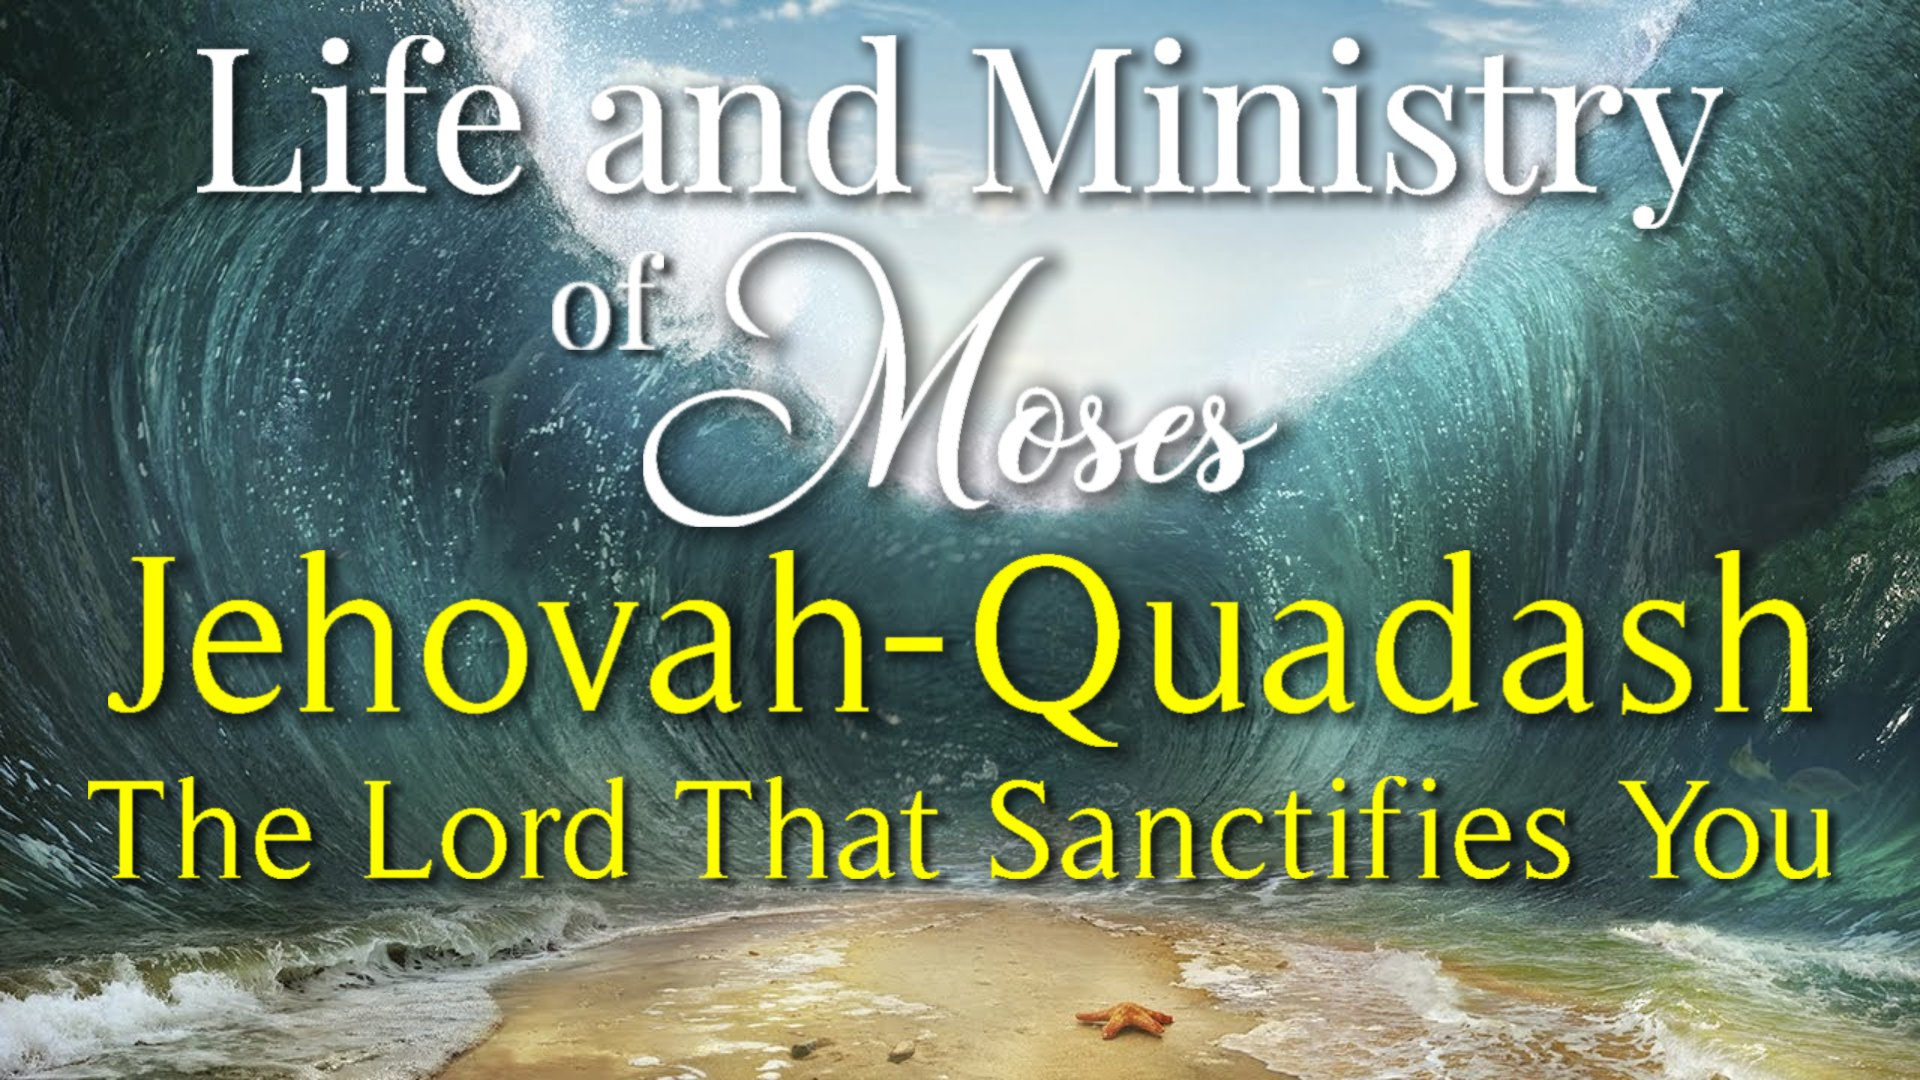 26 Jehovah-Quadash The Lord that Sanctifies You